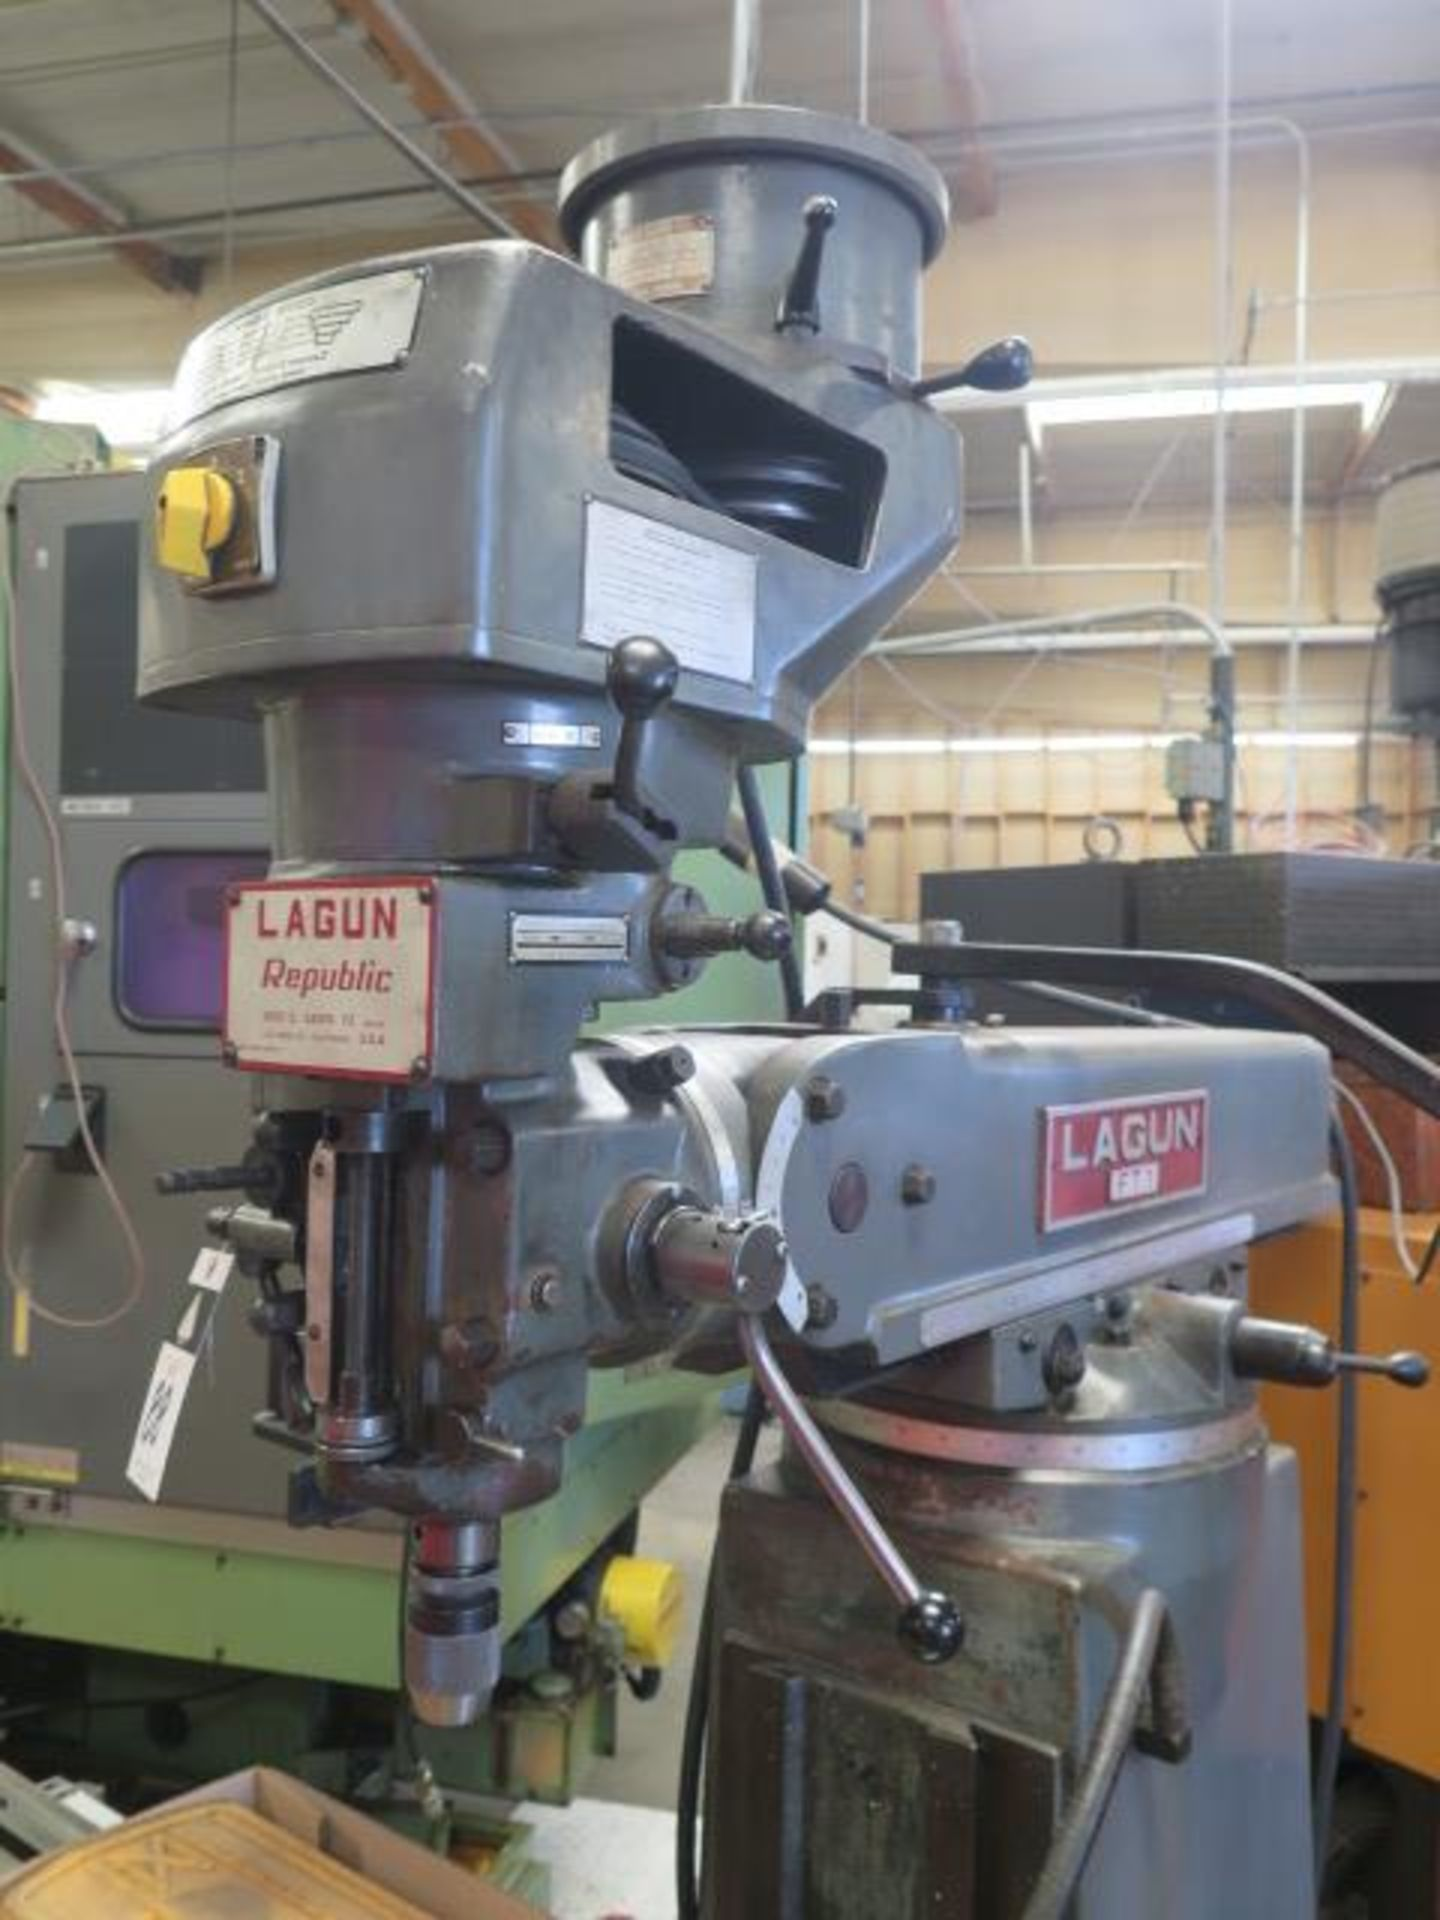 """Lagun FT-1 Vertical Mill w/ Mitutoyo DRO, 55-2940 RPM, 8-Speeds, Power Feed, 9"""" x 42"""" Table (SOLD - Image 5 of 14"""